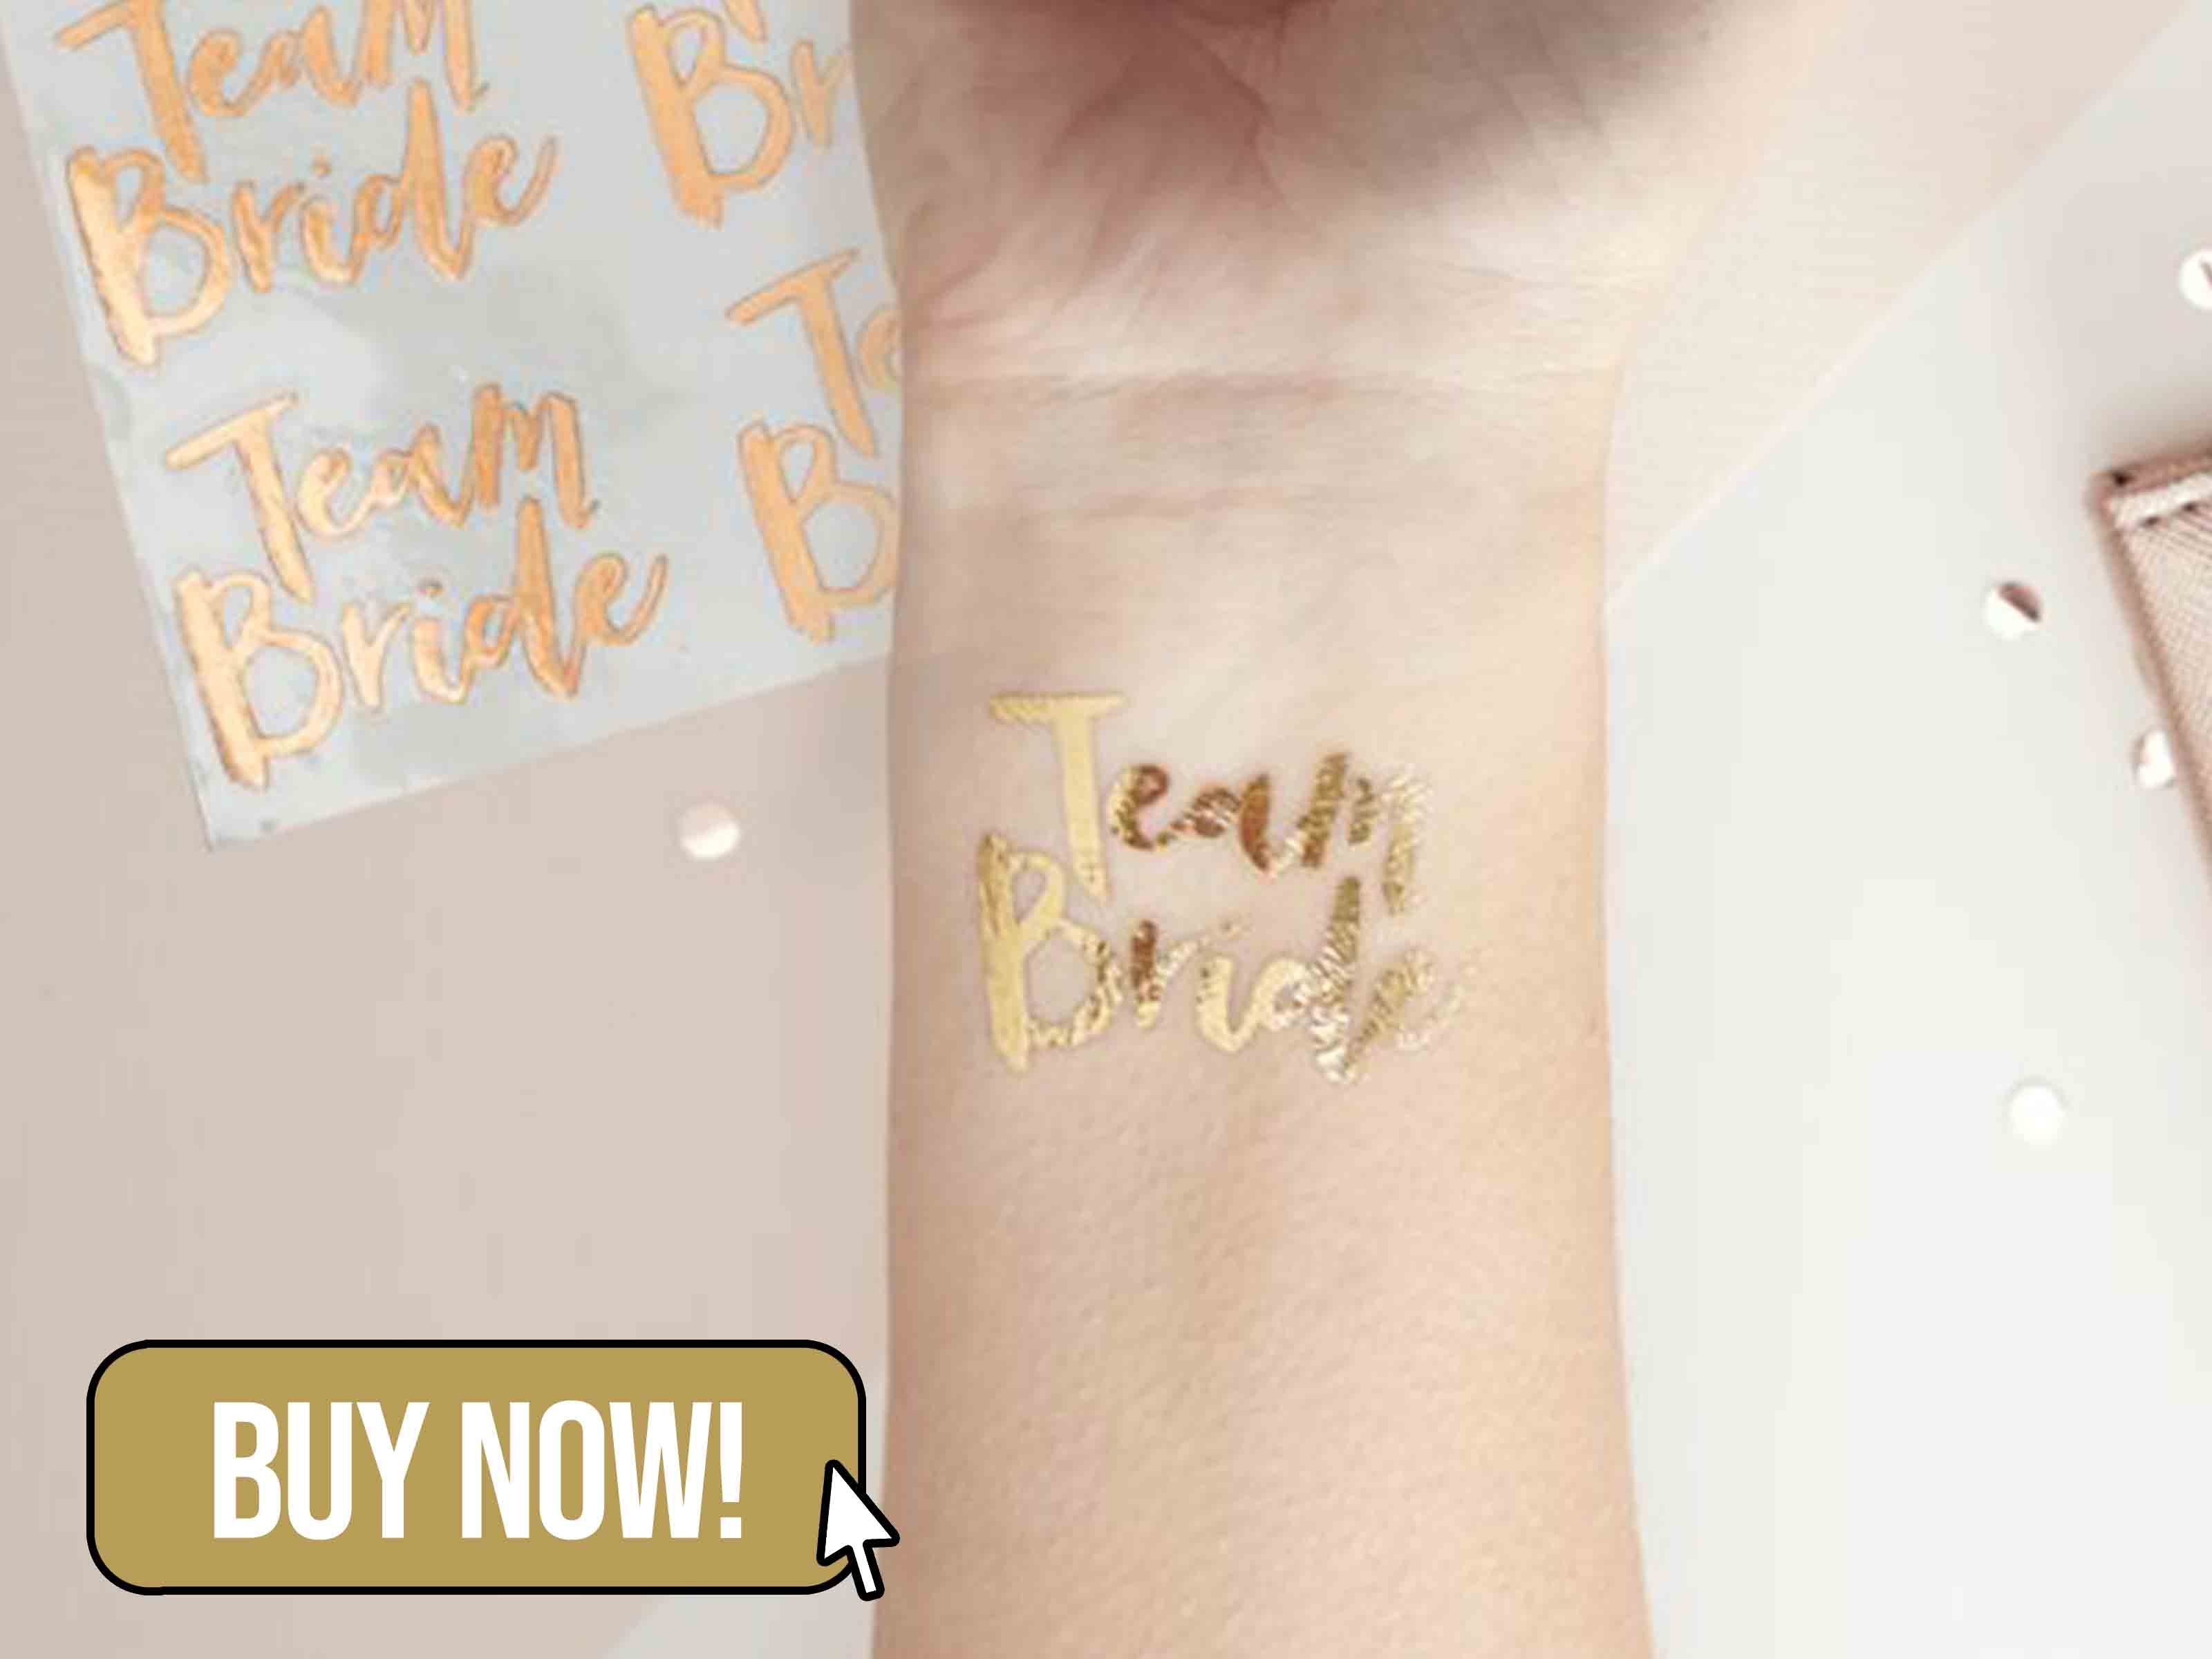 ROSE GOLD TEAM BRIDE TEMPORARY TATTOO - Ginger Ray